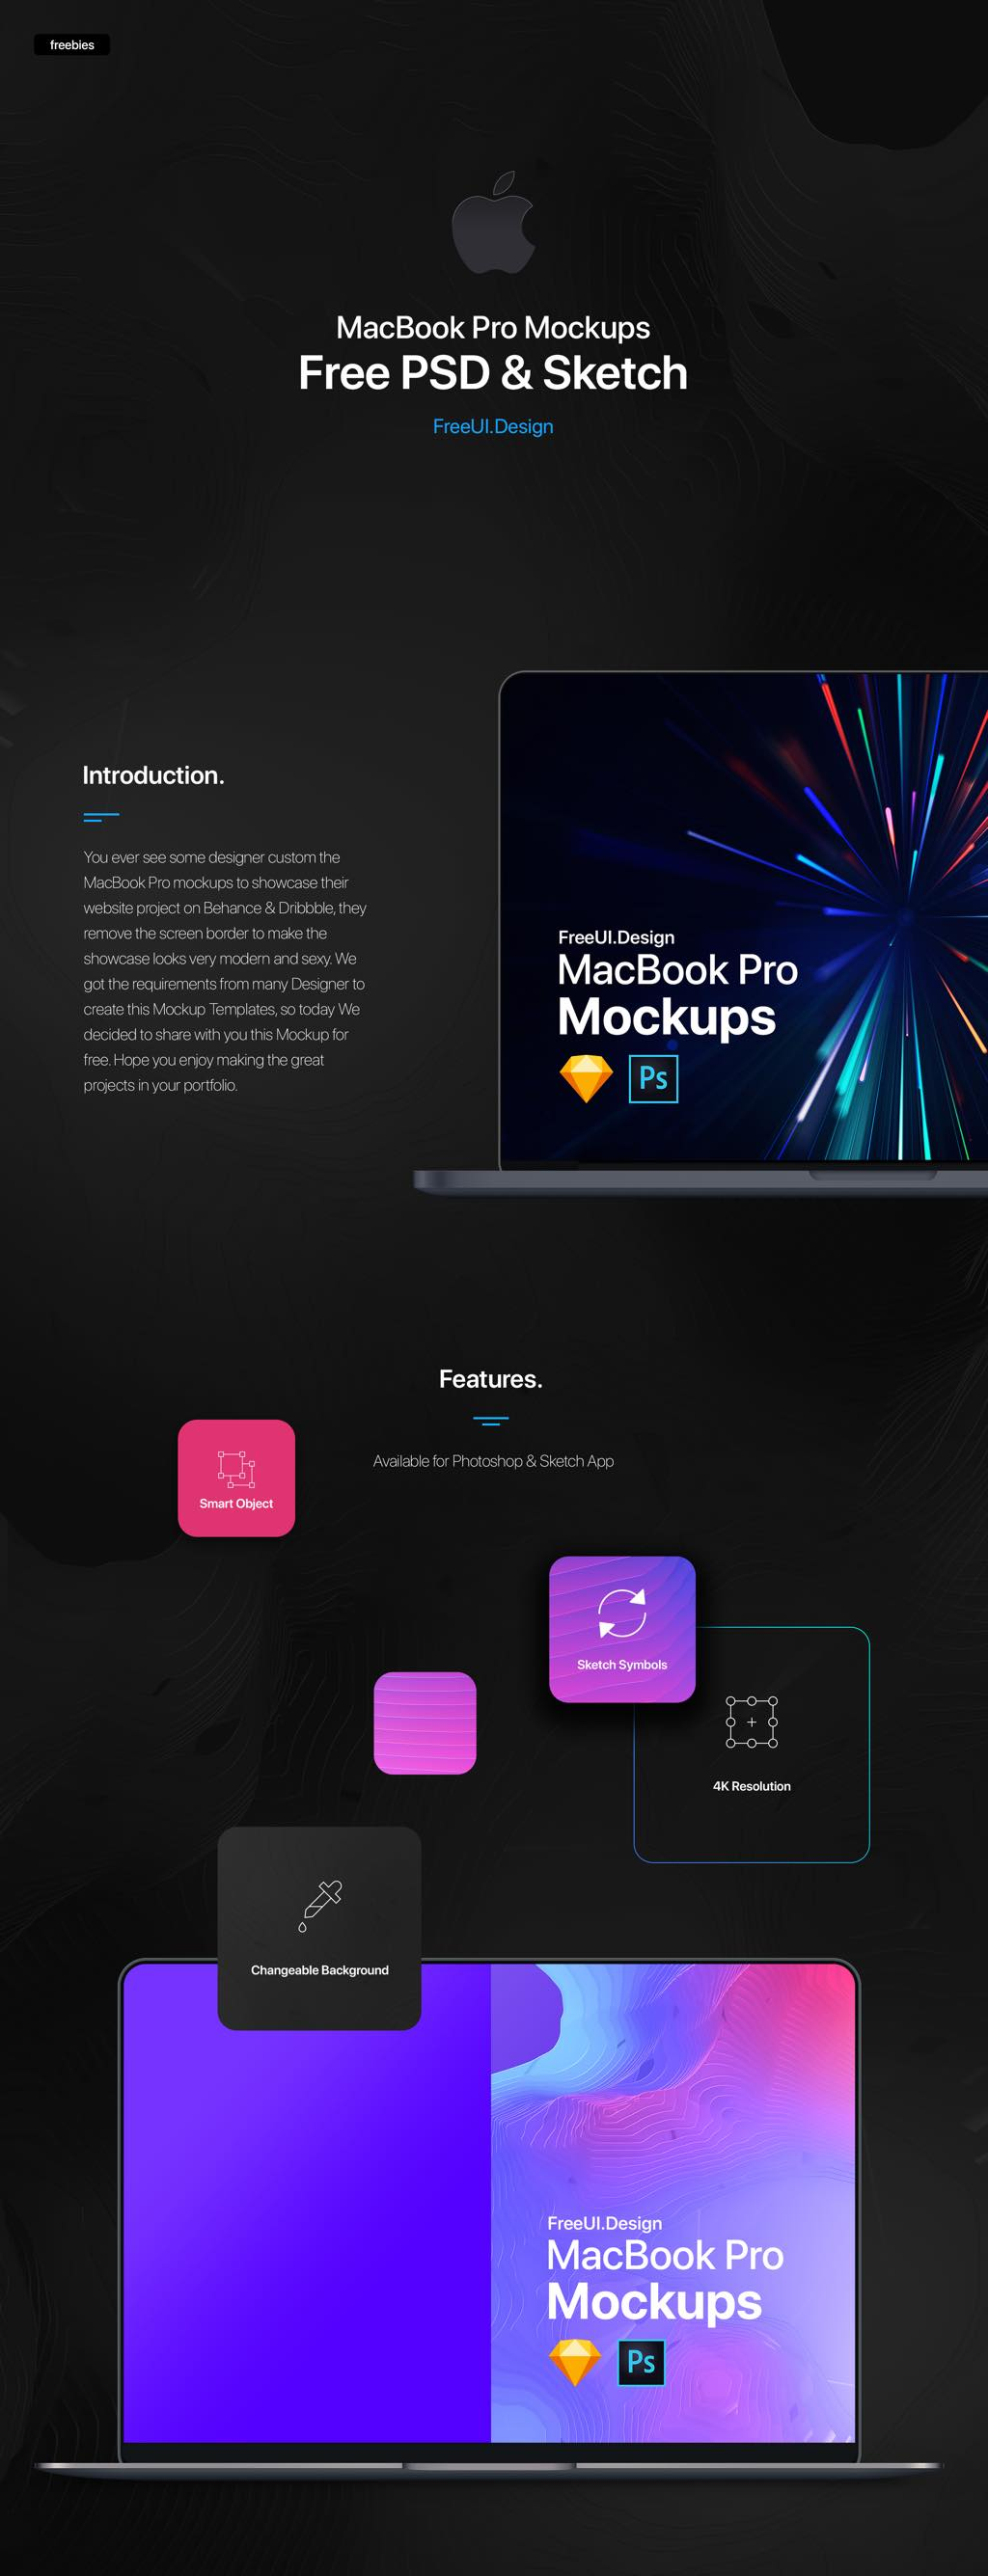 The New MacBook Pro Mockup | Freebies | Photoshop + Sketch App